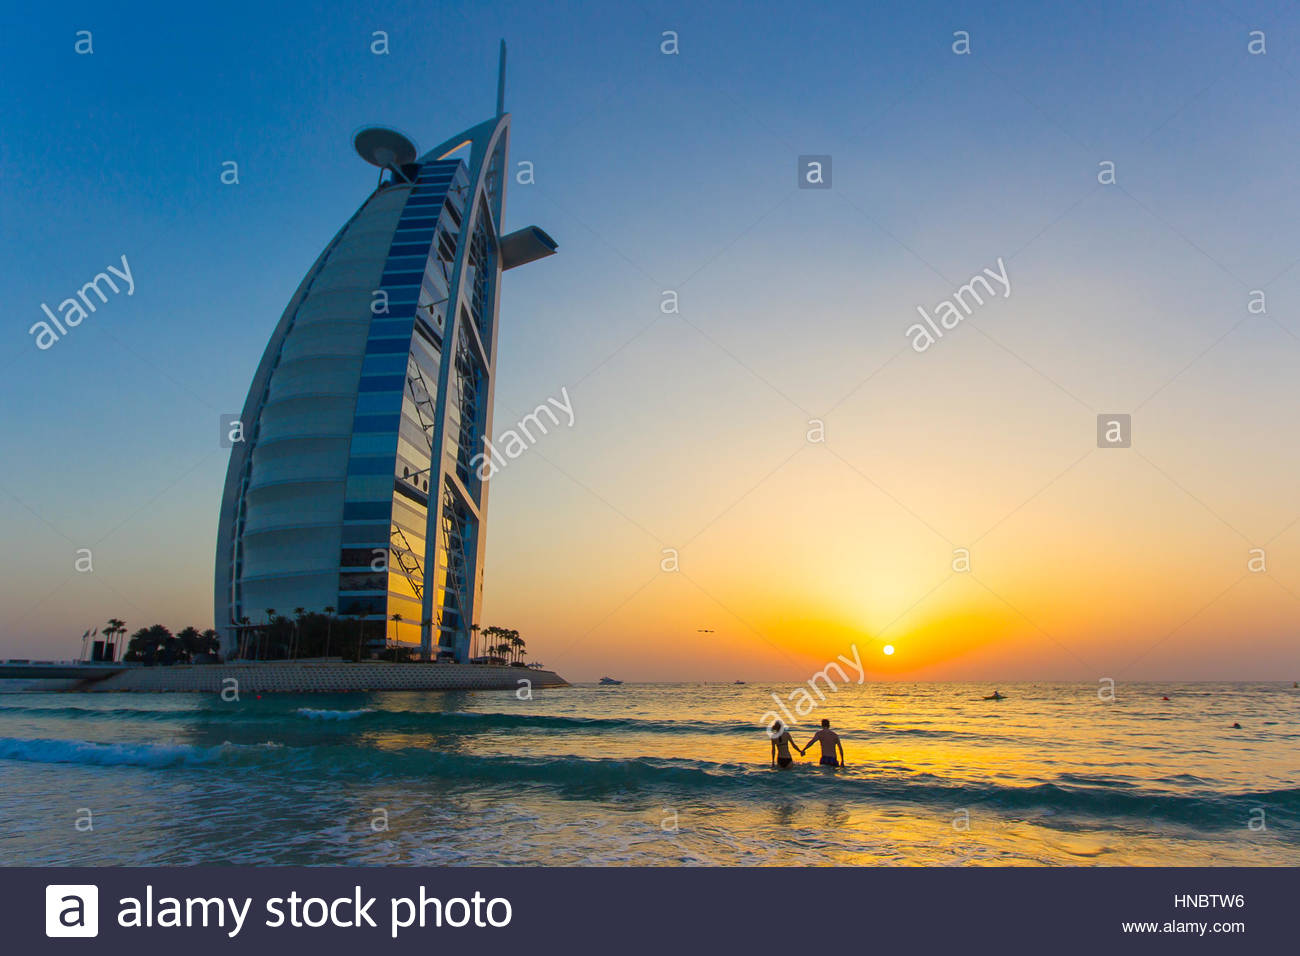 A couple holding hands and watching the sunset in the Persian Gulf, near the Burj Al Arab hotel. - Stock Image